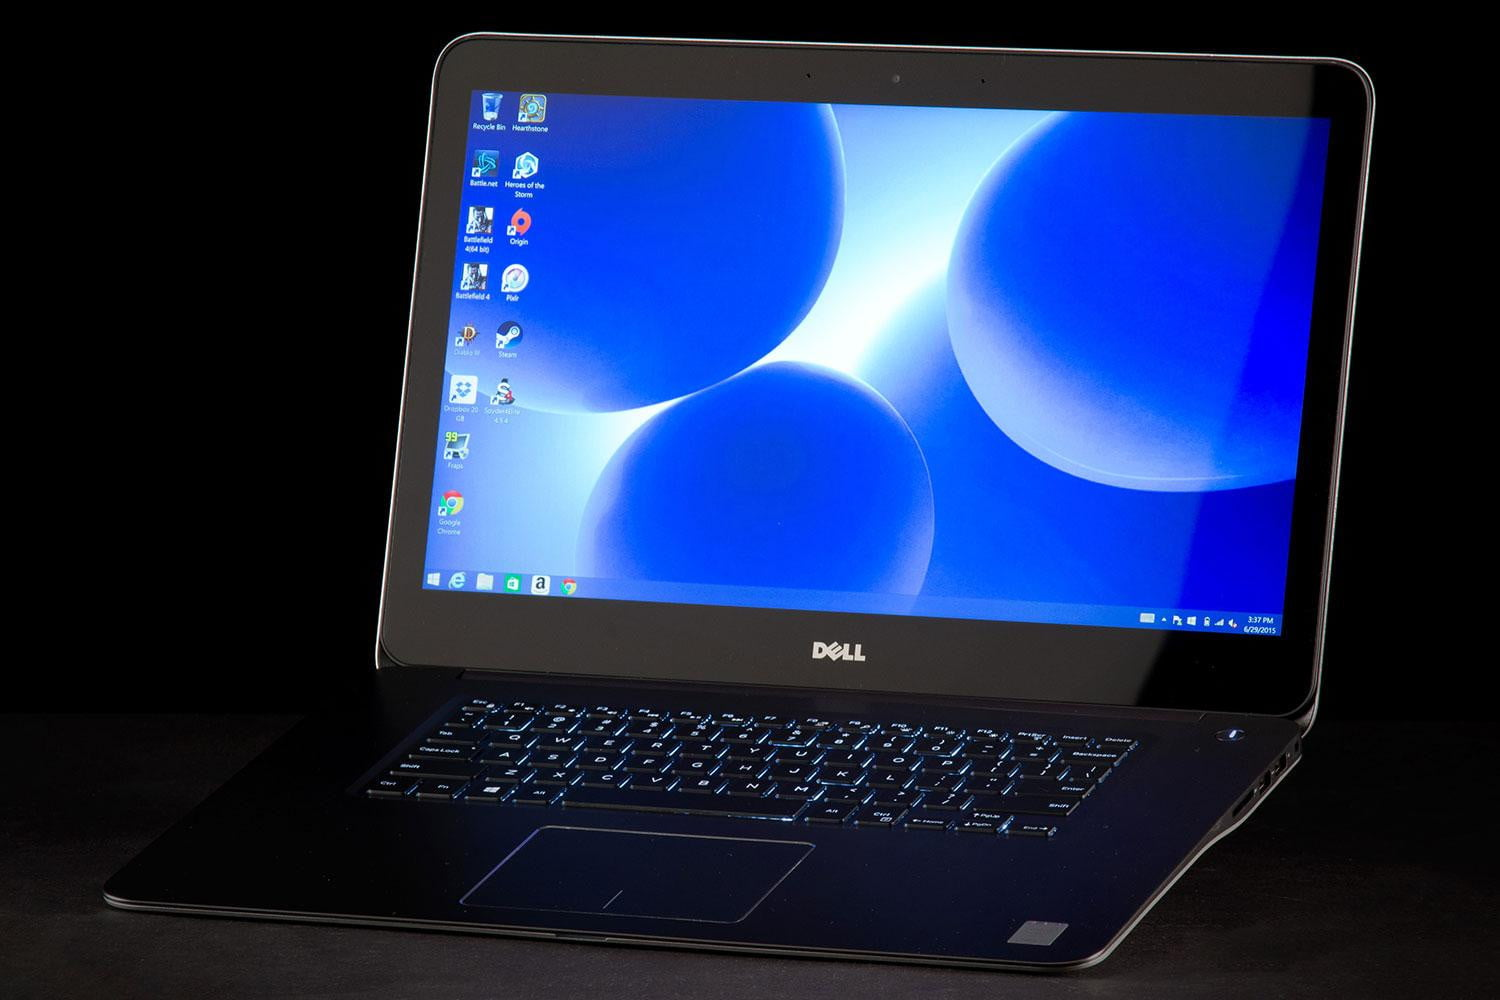 dell inspiron 15 7000 with 4k display review digital trends. Black Bedroom Furniture Sets. Home Design Ideas